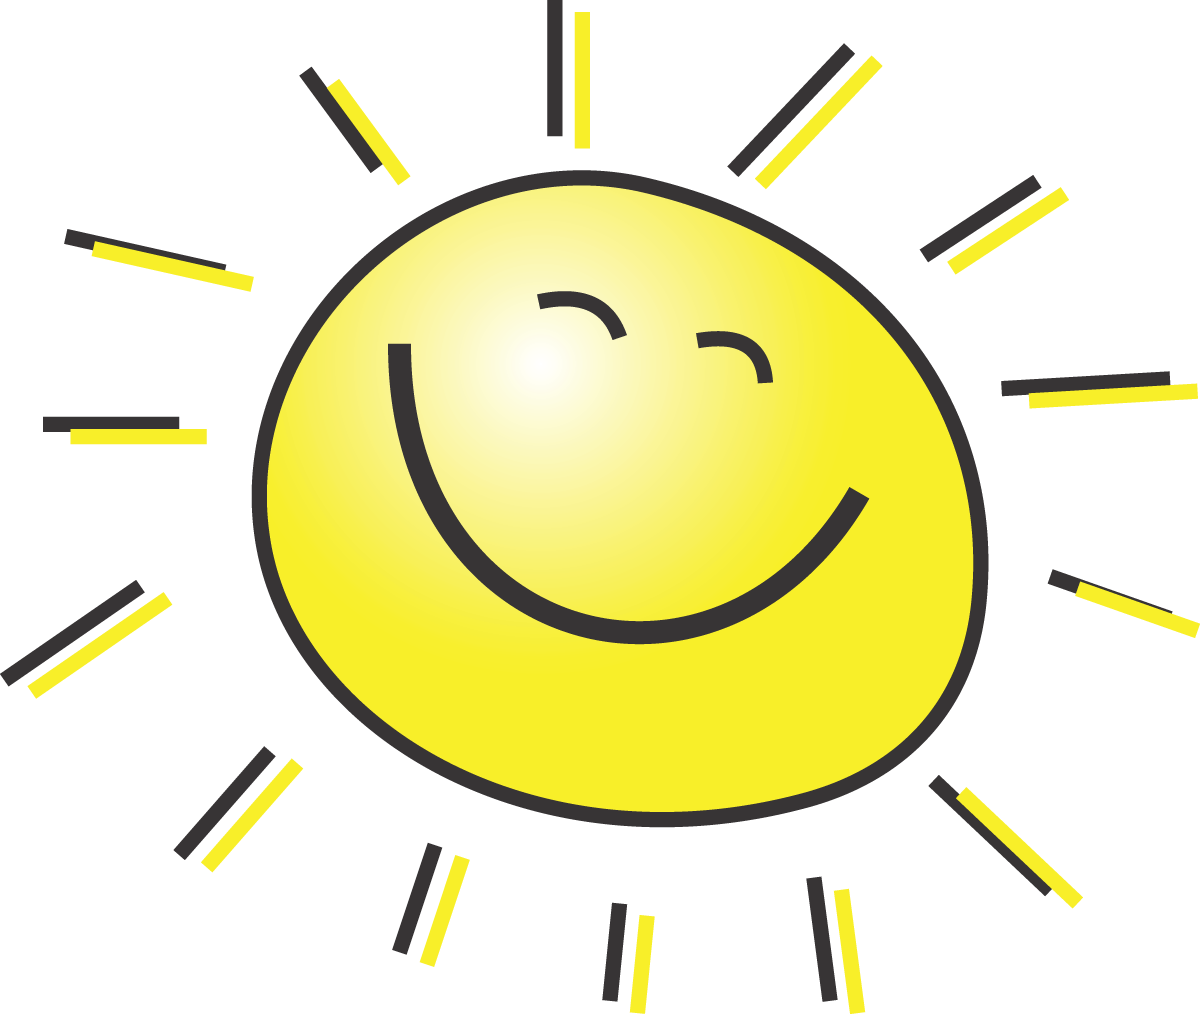 Free Summer Clipart Illustration Of A Ha-Free Summer Clipart Illustration Of A Happy Smiling Sun by 00015 .-1